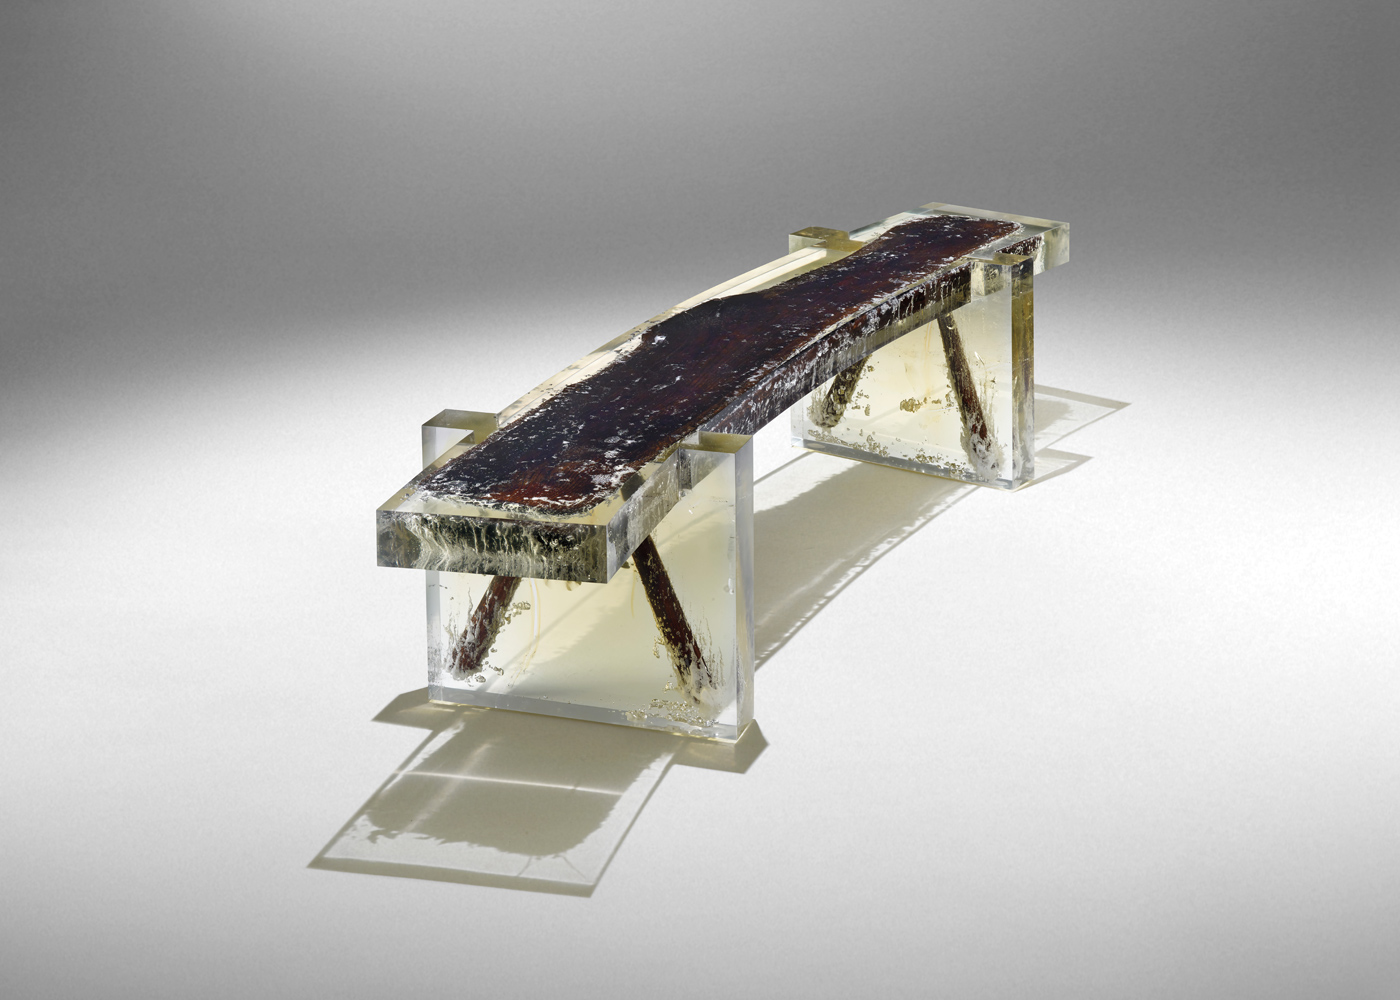 Studio-Nucleo_souvenir-of-the-last-century_bench10_low_1400